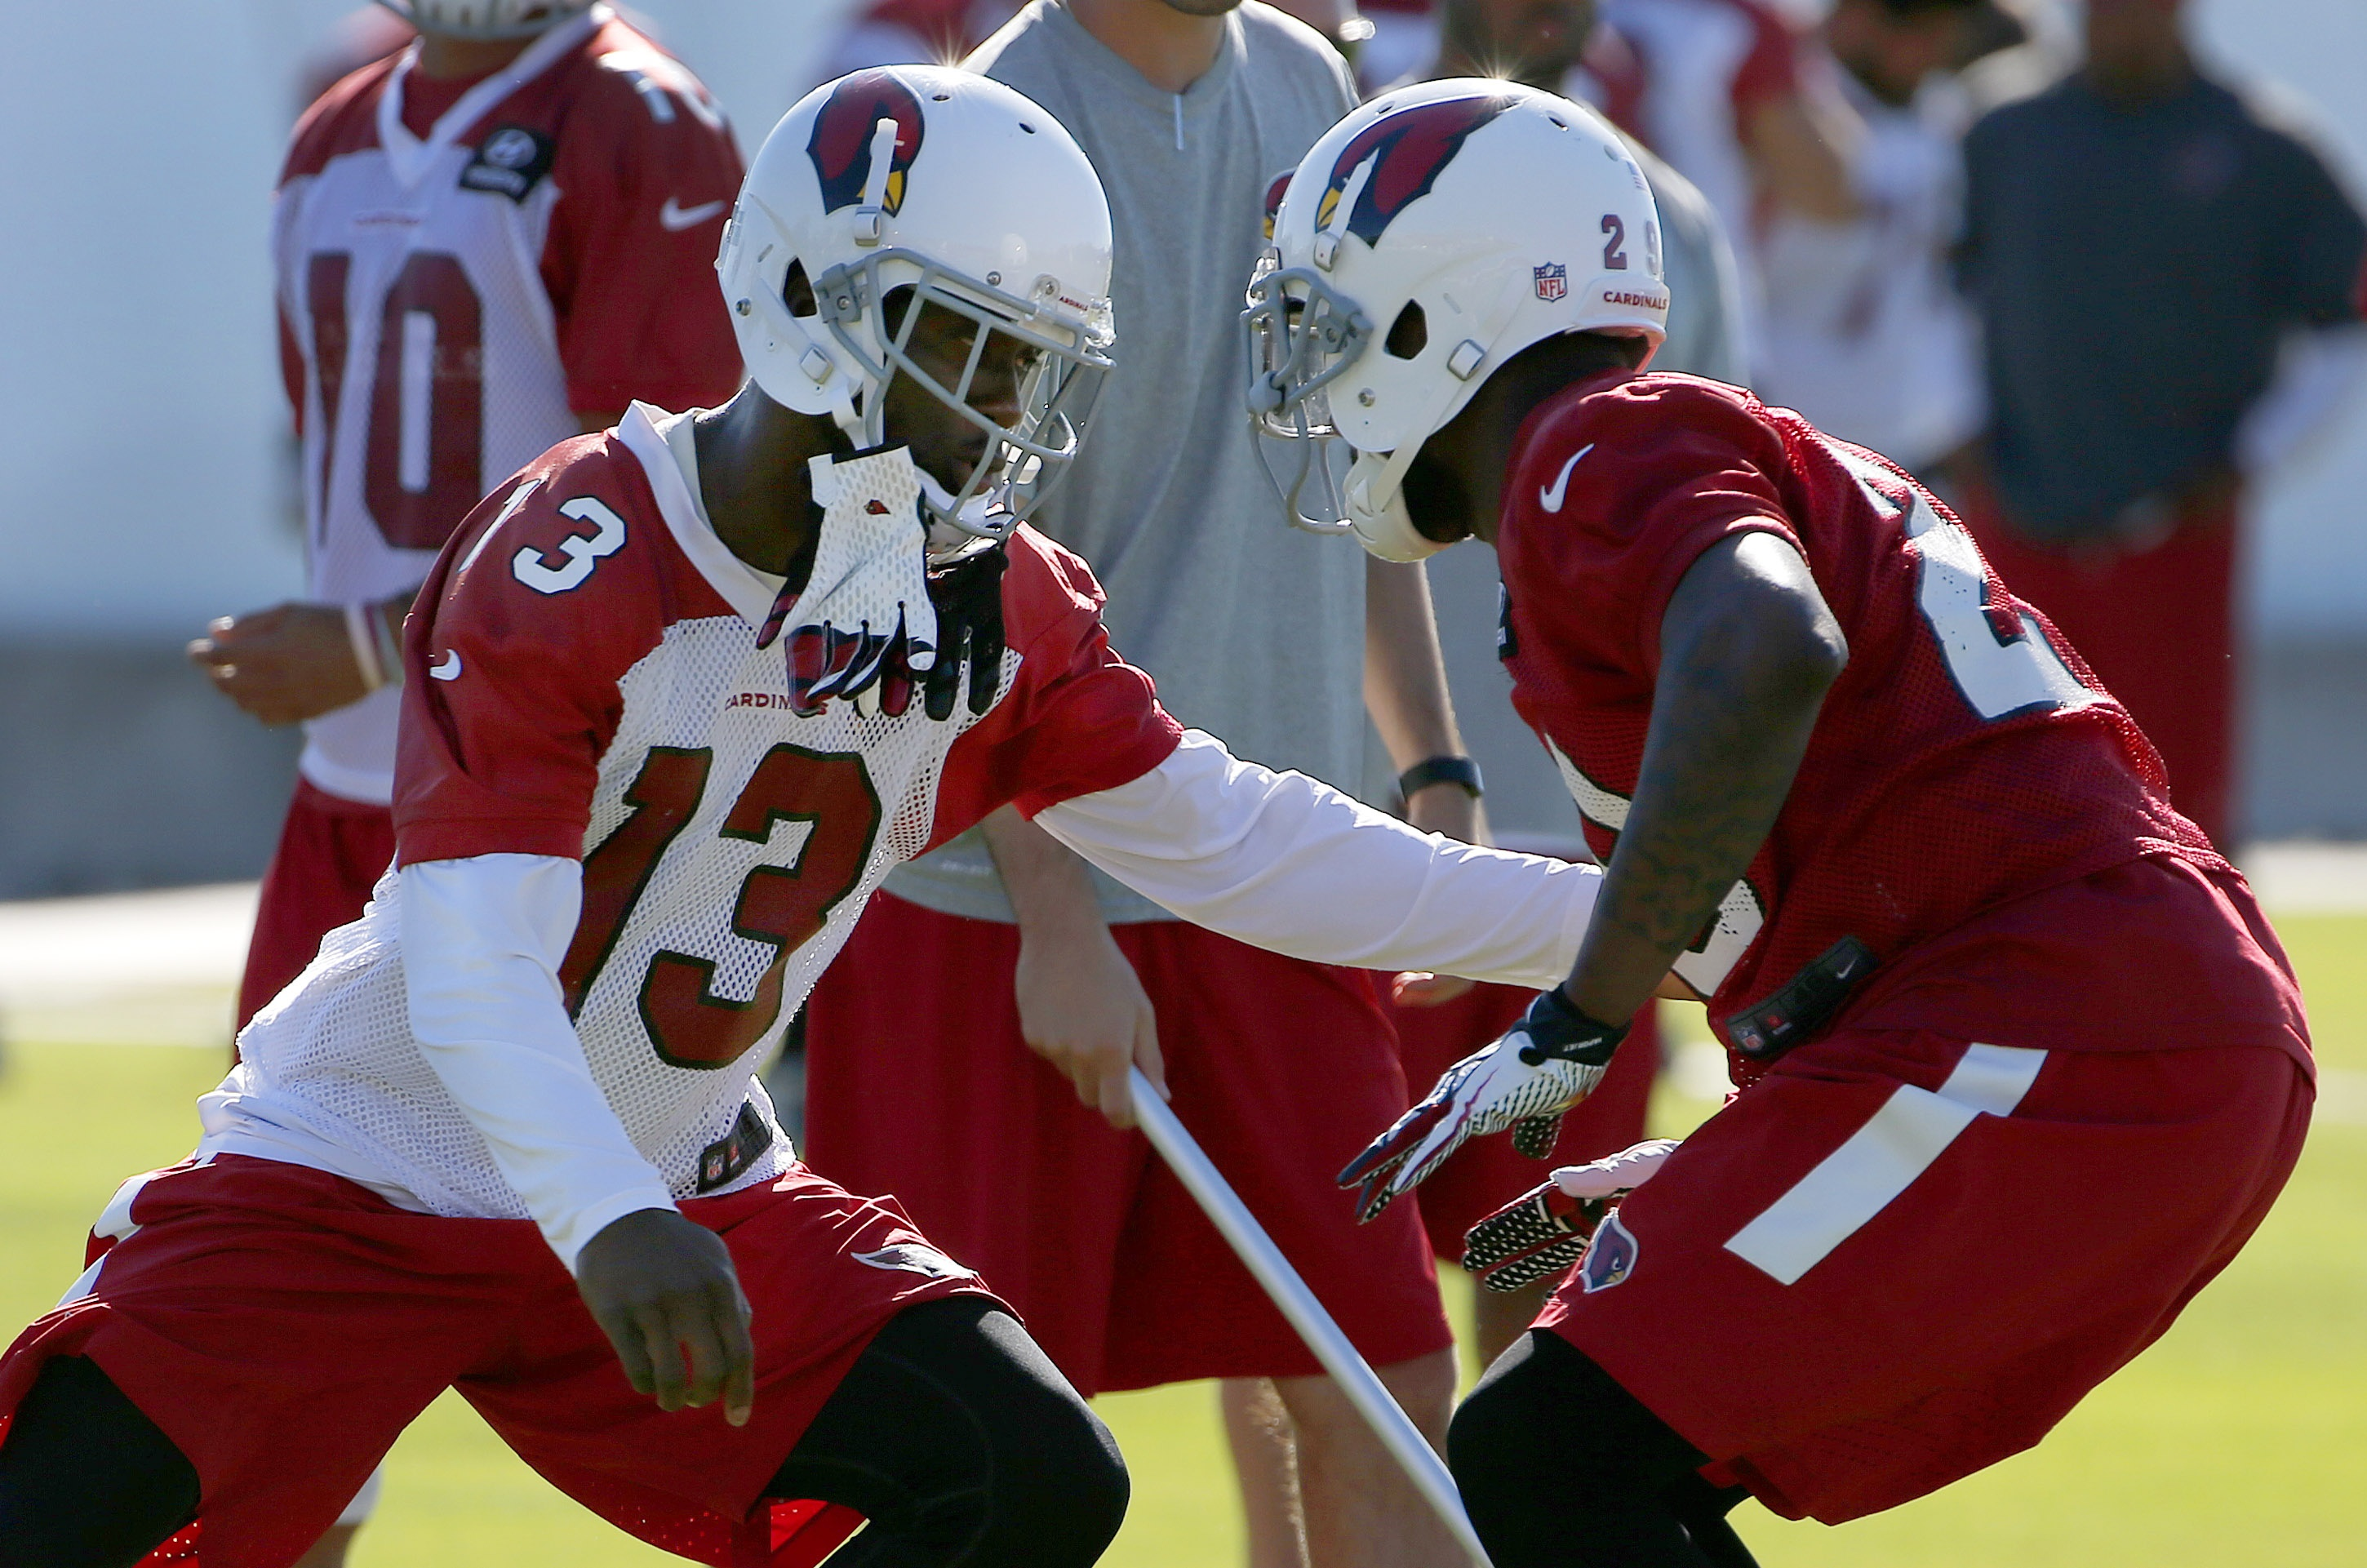 Arizona Cardinals wide receiver Jaron Brown (13) tries to get past safety Chris Clemons (29) during an NFL football organized team activity Monday, June 1, 2015, in Tempe, Ariz. (AP Photo/Ross D. Franklin)